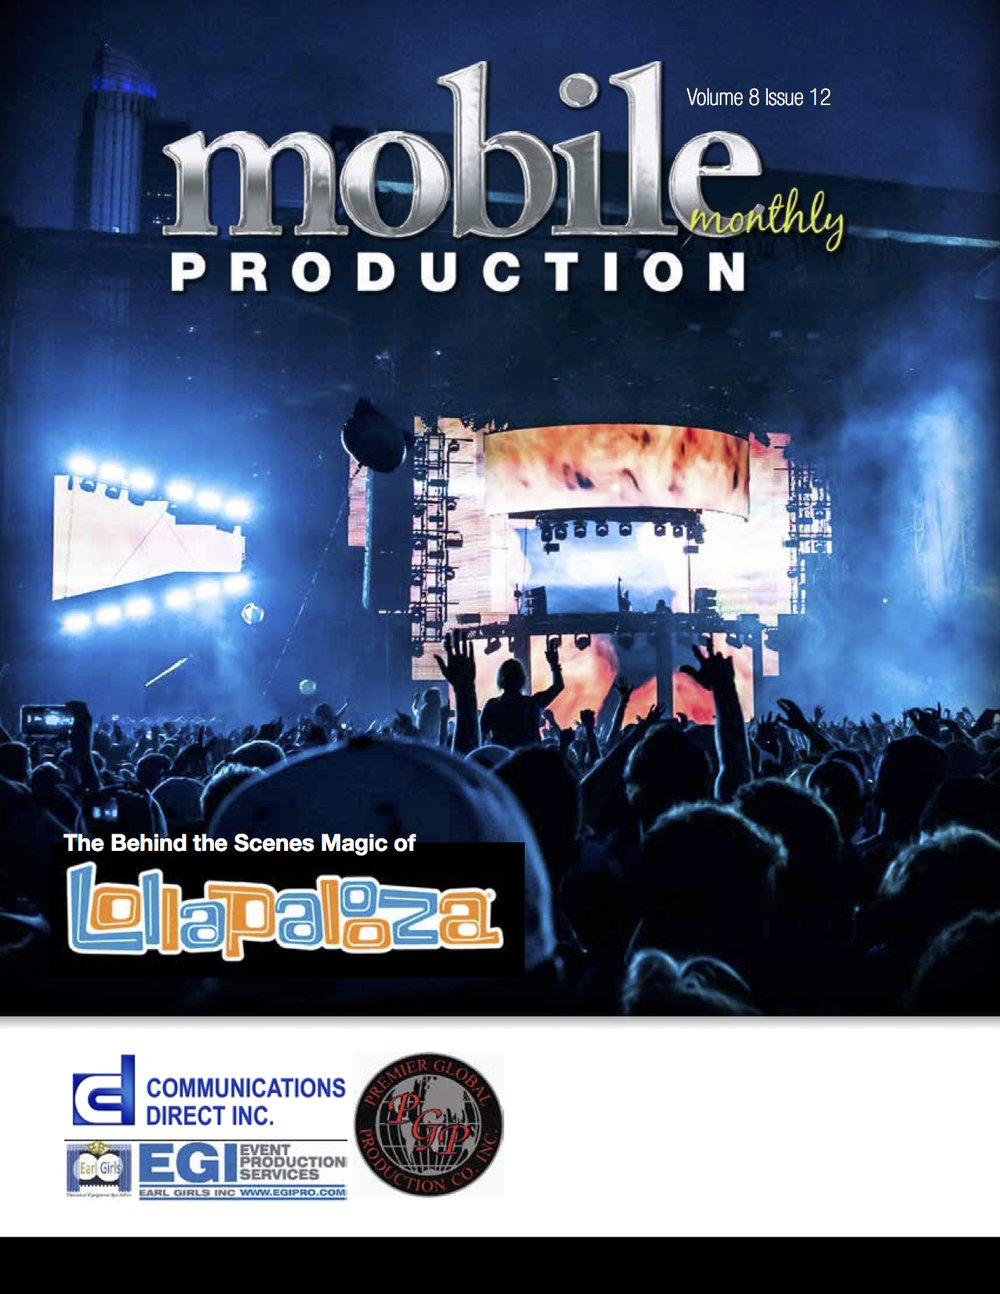 Mobile Production Monthly, Volume 9, Issue 12